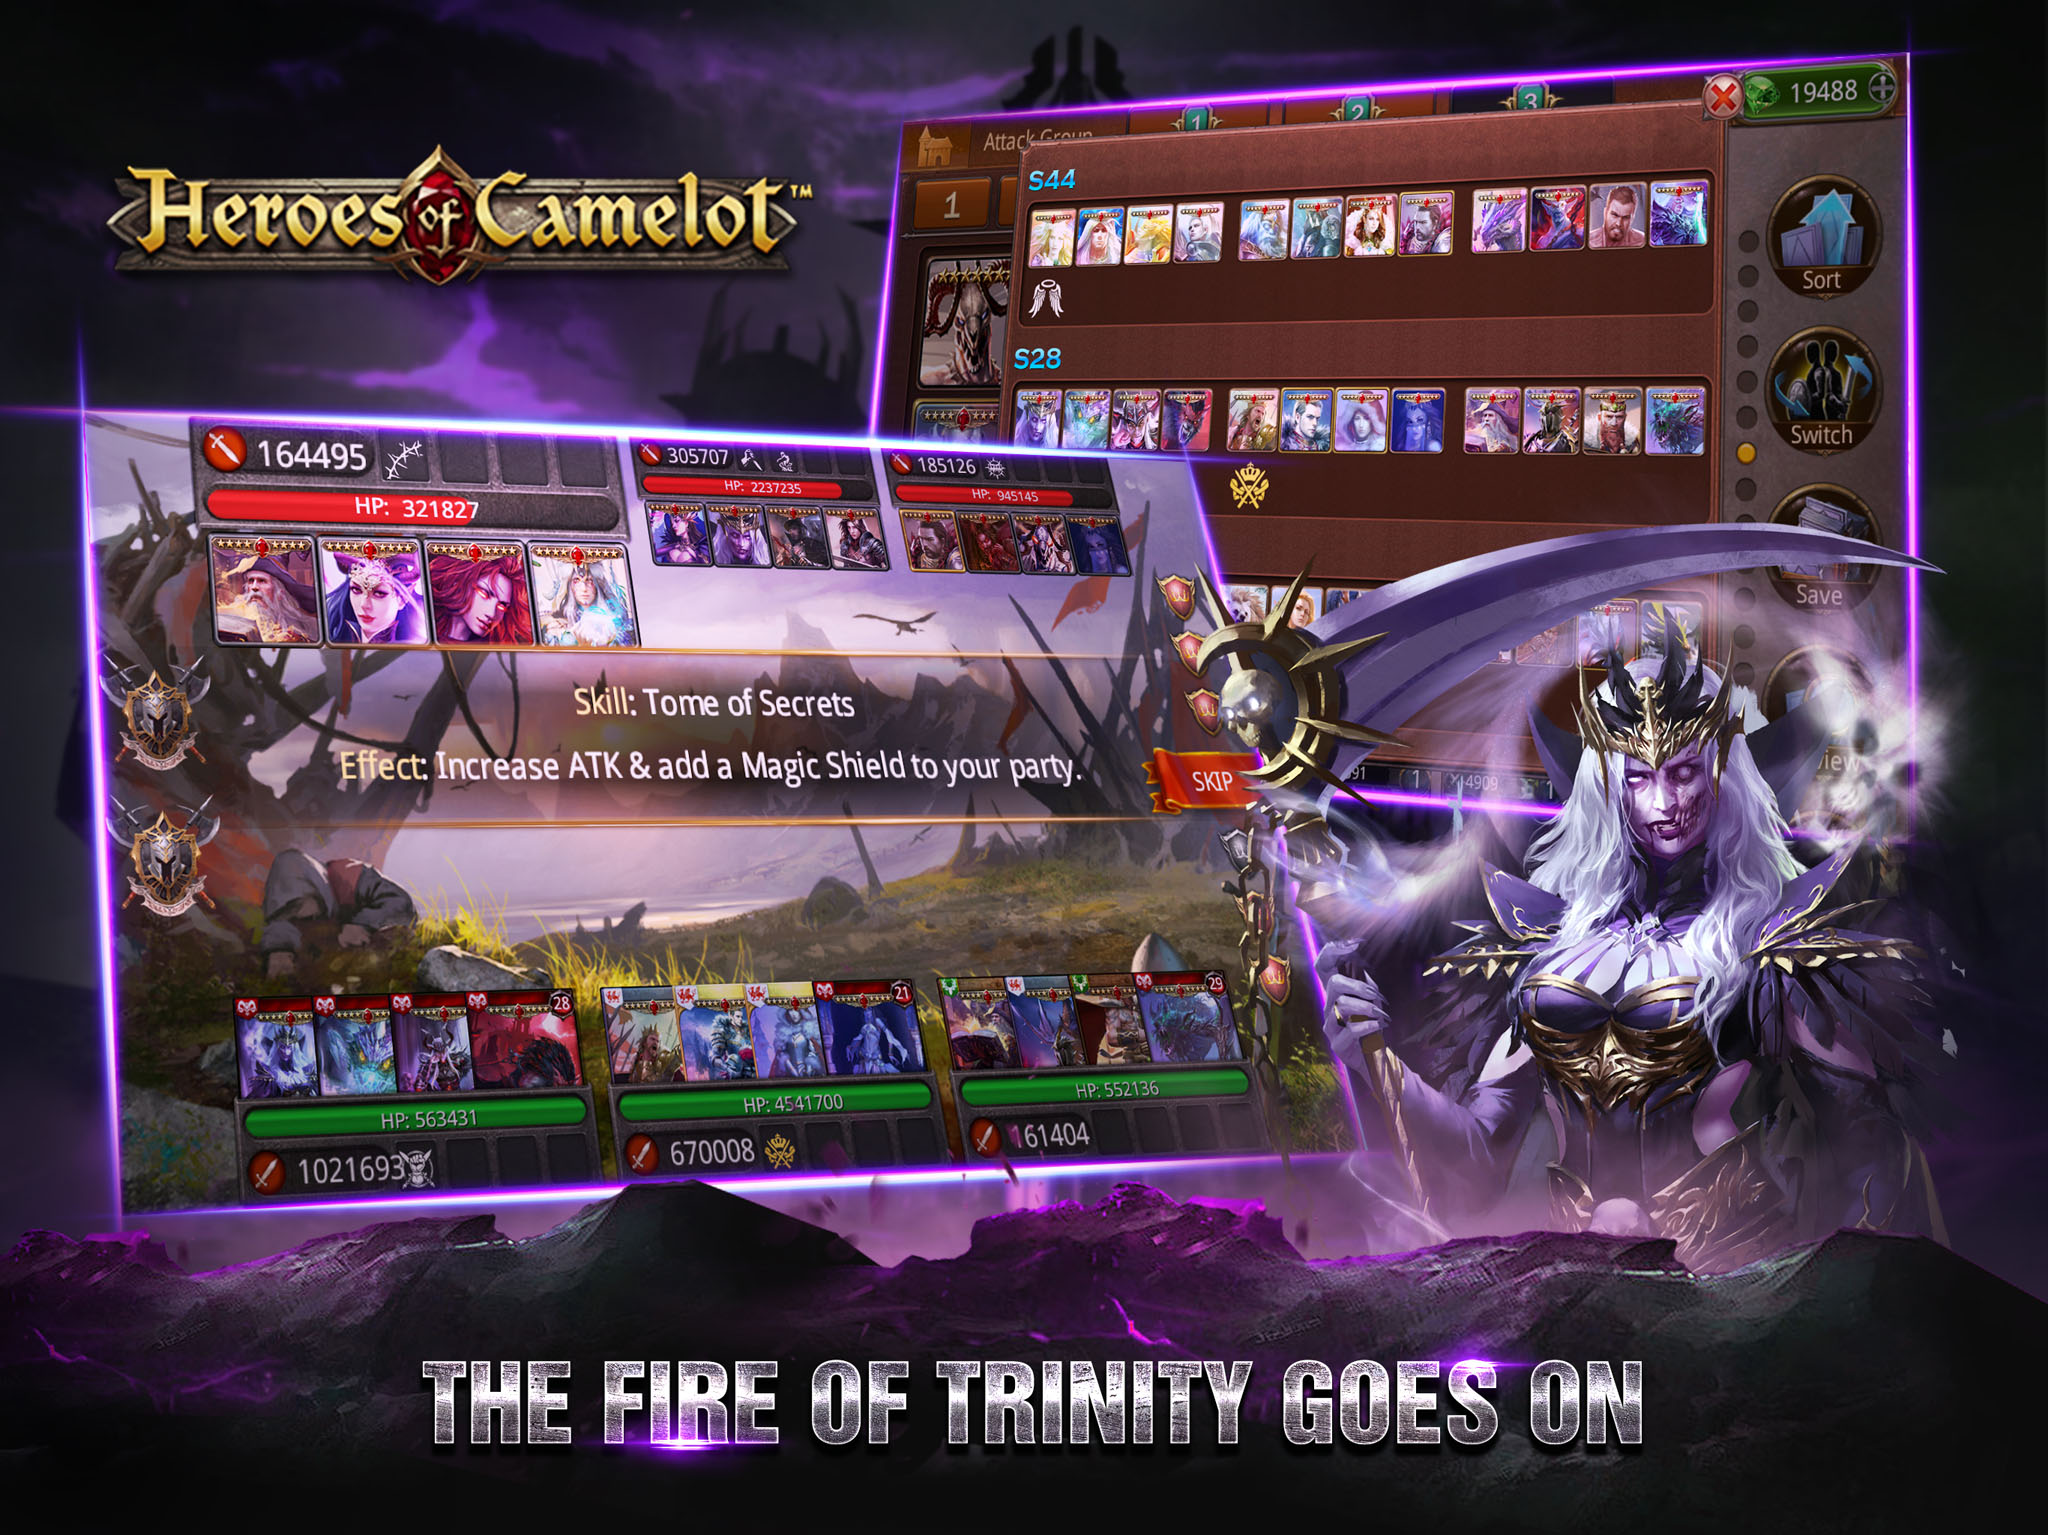 heroes of camelot forums